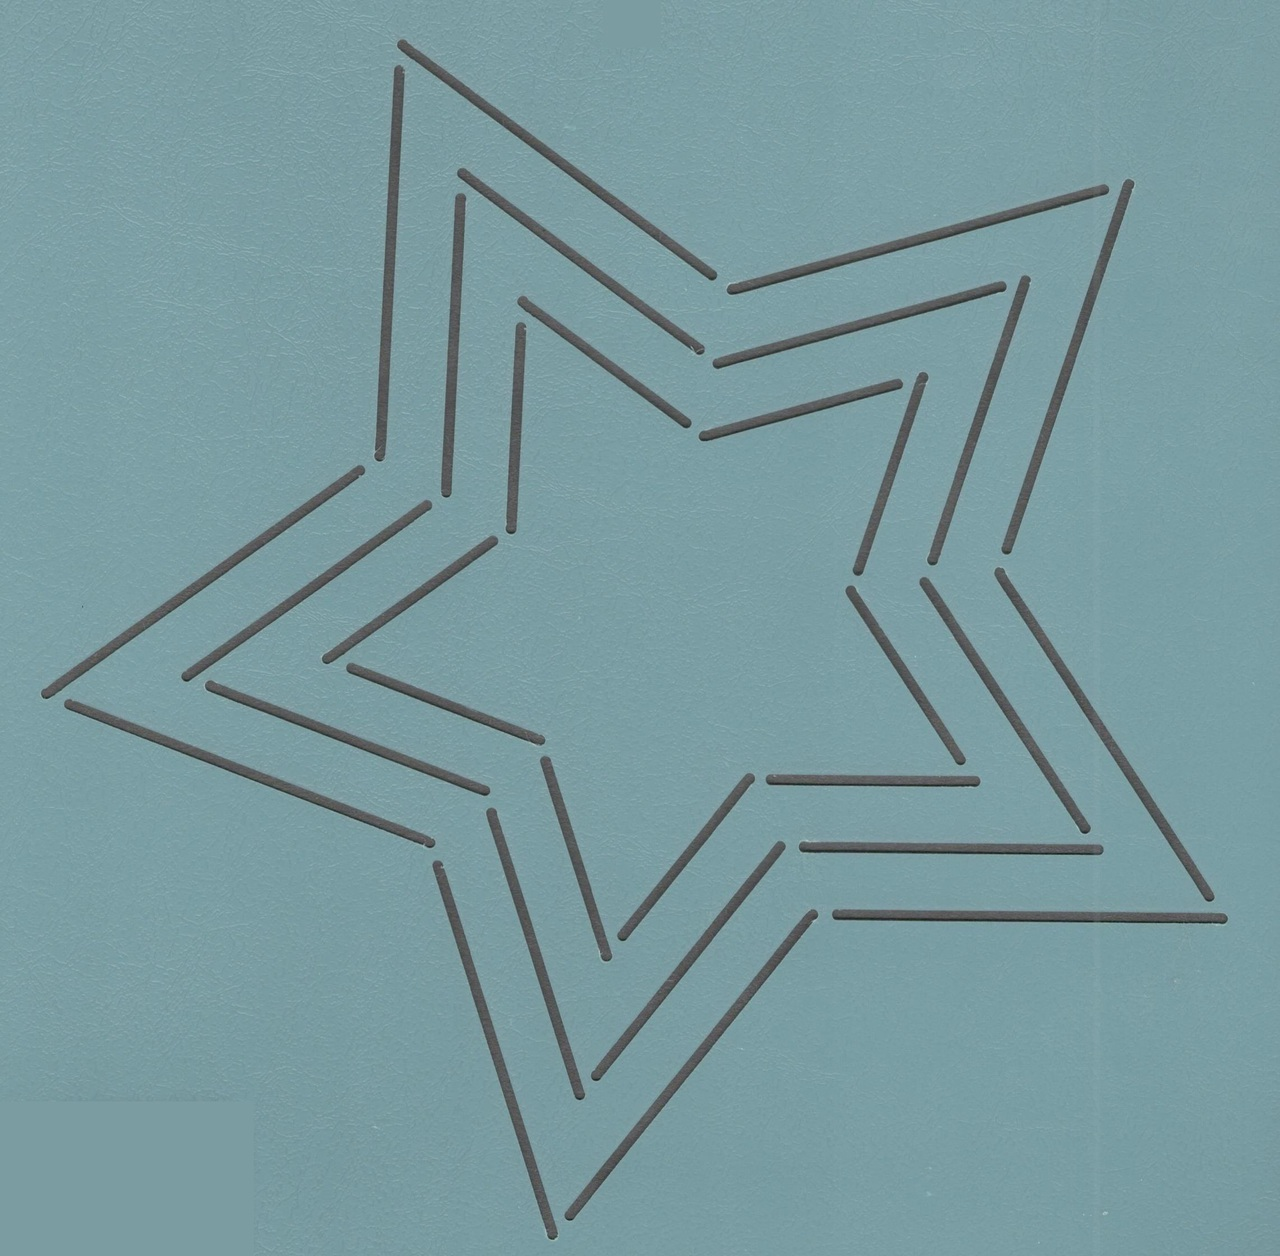 Five Pointed Star 7